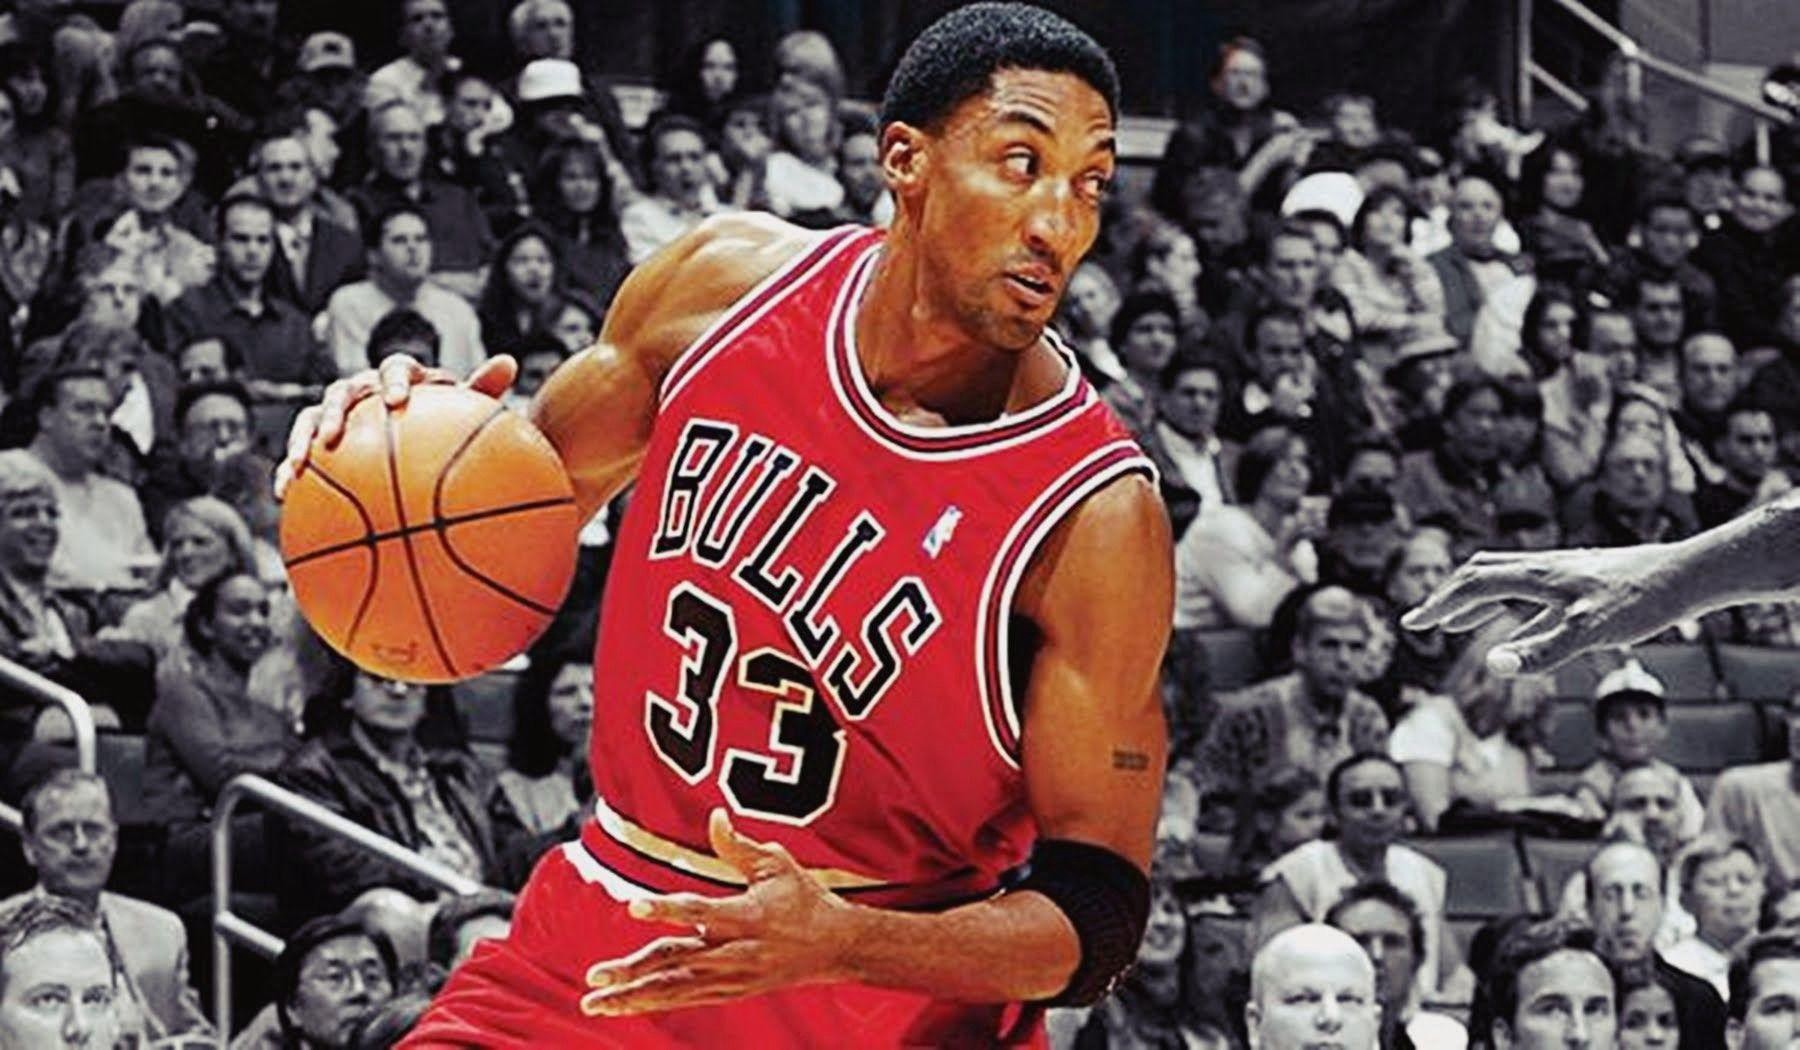 338307d5 Let's just say it: Scottie Pippen was fucking great. Not good. Not really  good. Not very good. Great. Great great.